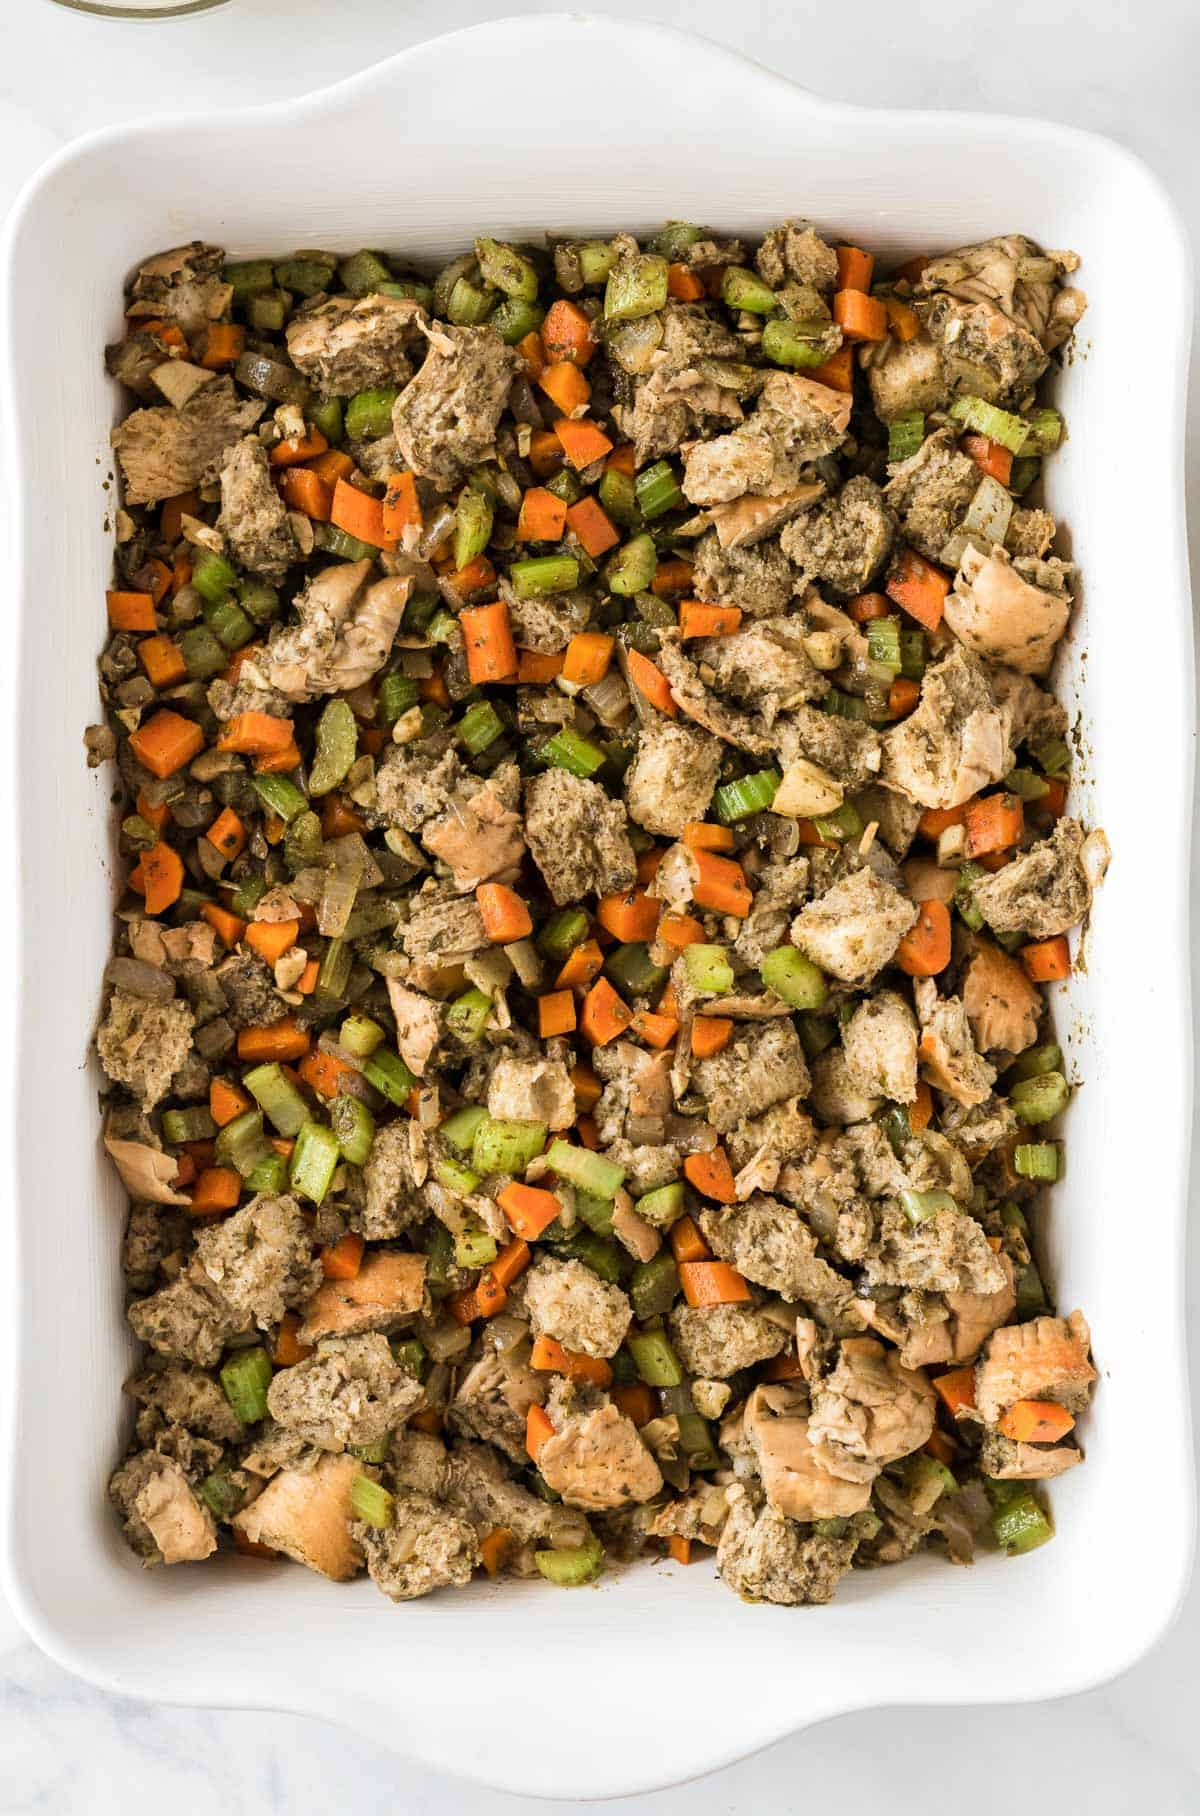 stuffing in the casserole dish